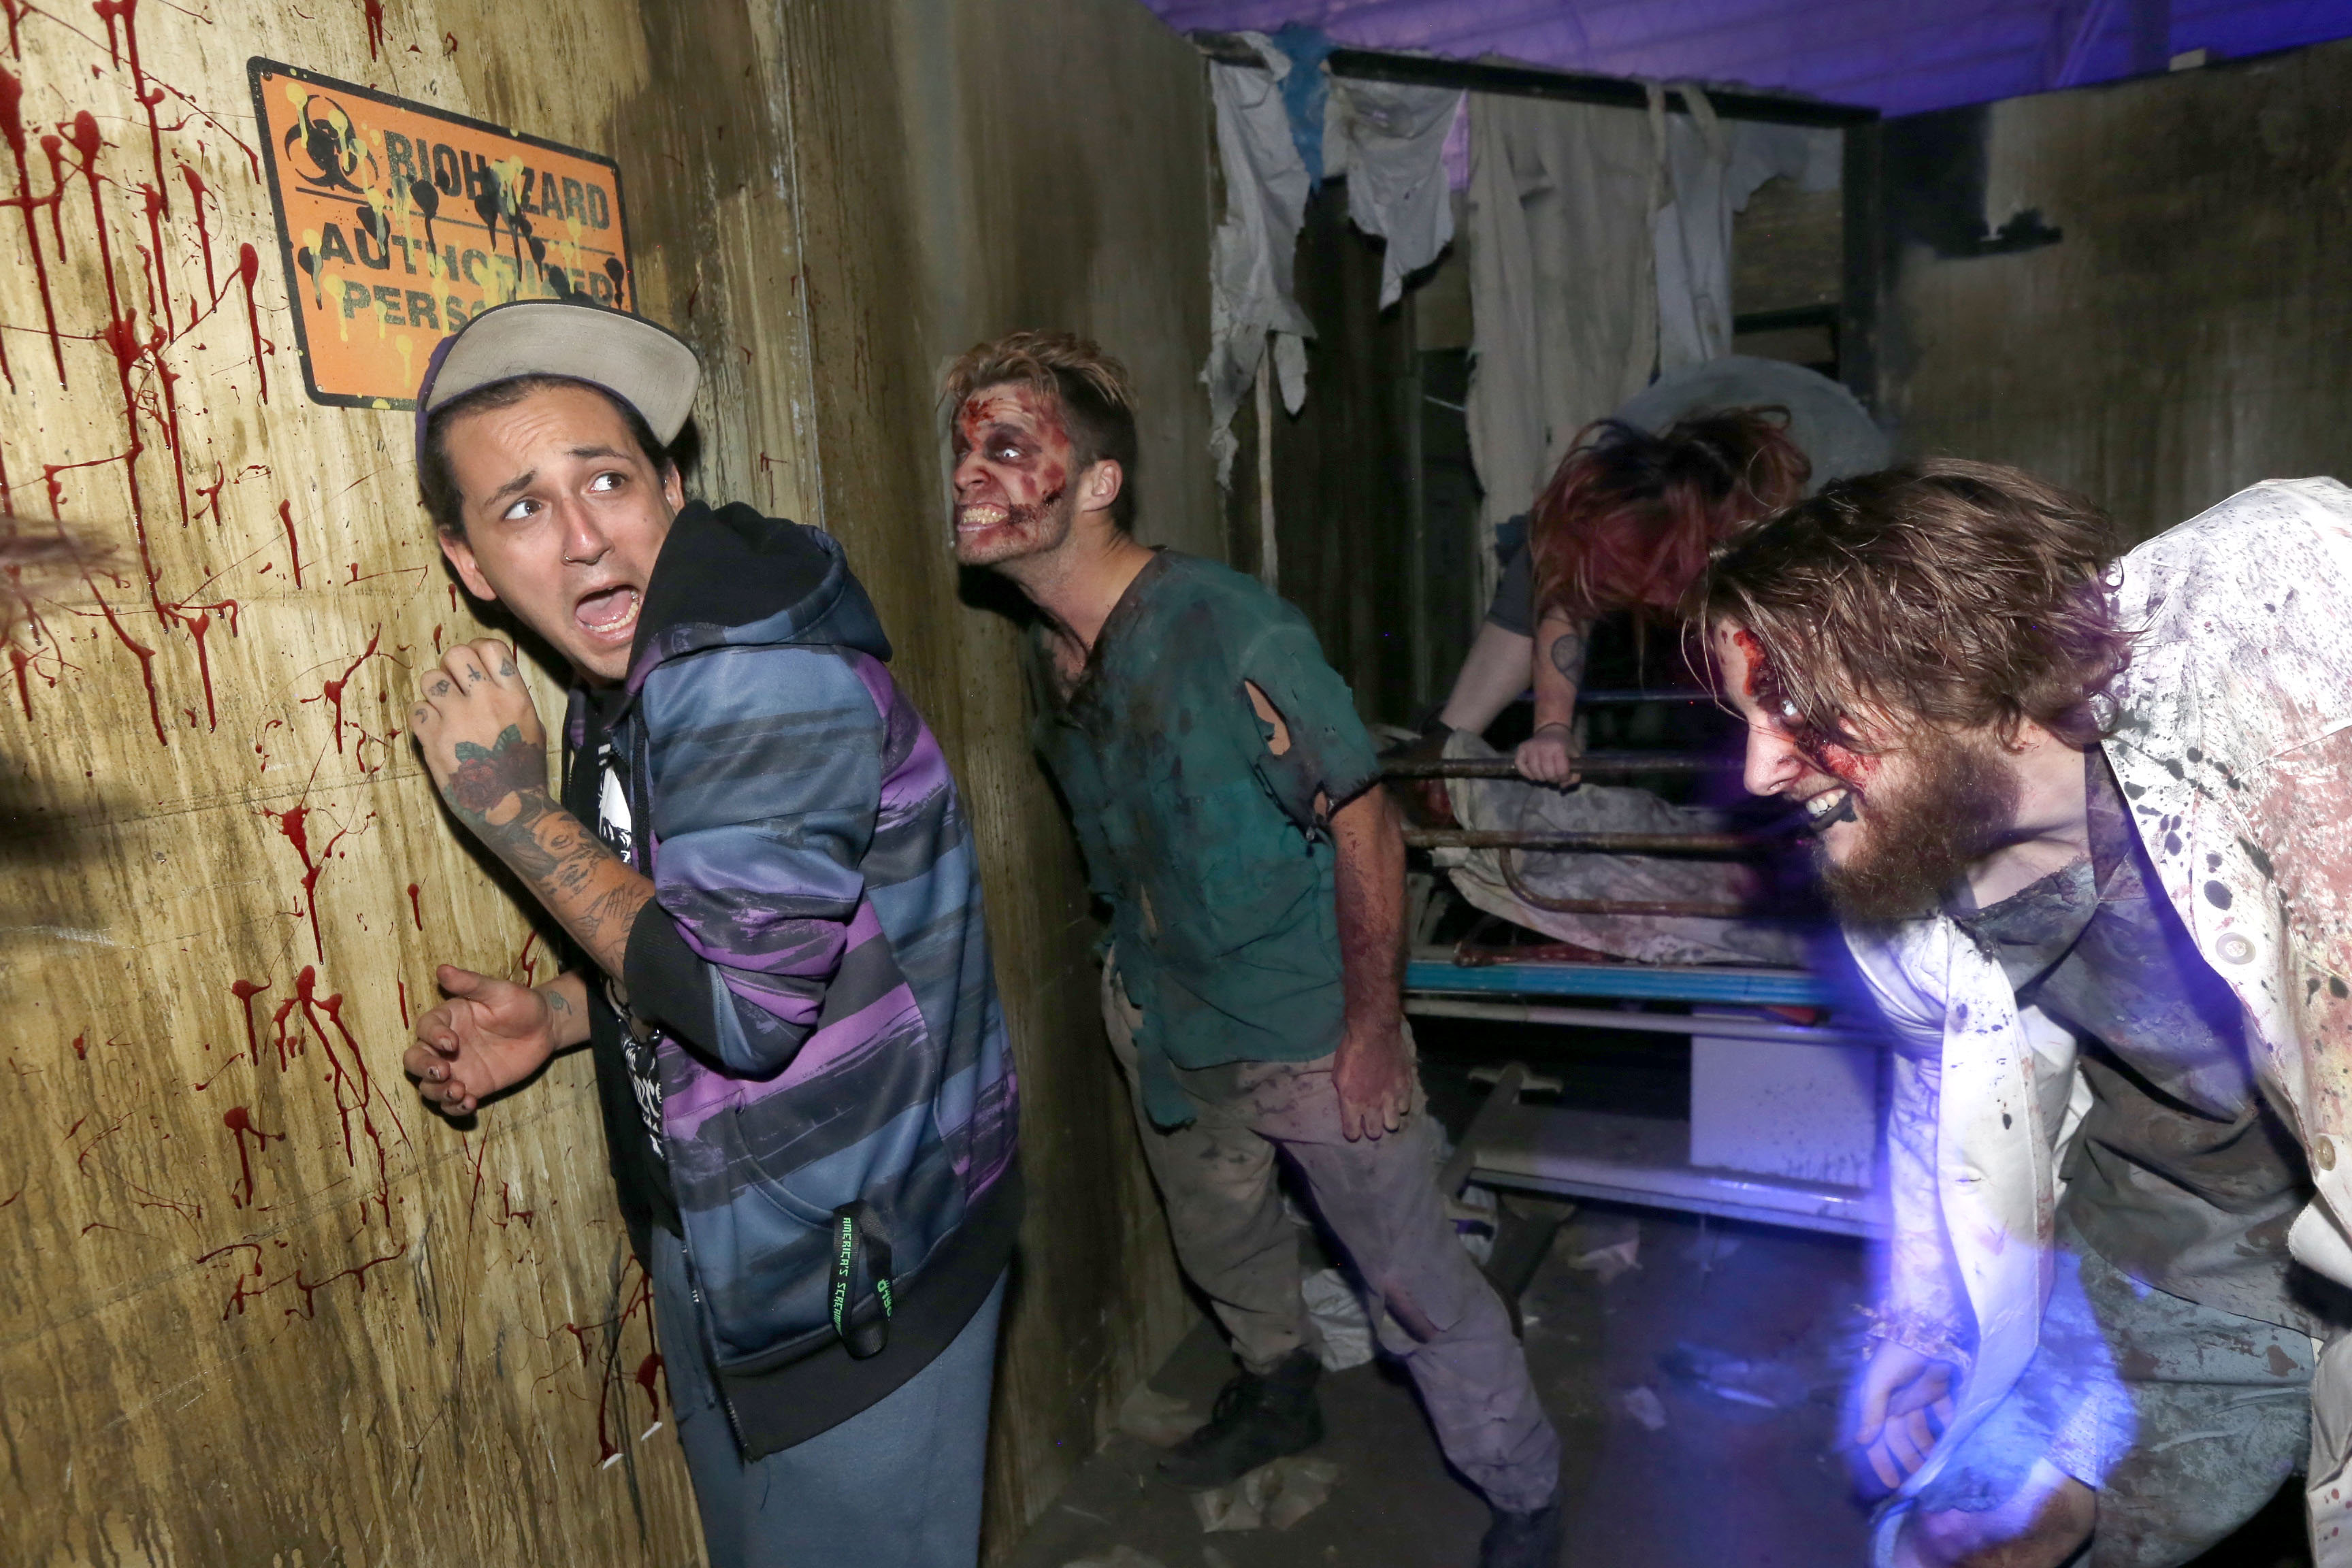 Joey Alemany, left, can't find the exit door fast enough when the zombies attack his space in The Asylum at Frightworld on Young Road in Tonawanda.  (Robert Kirkham/Buffalo News)